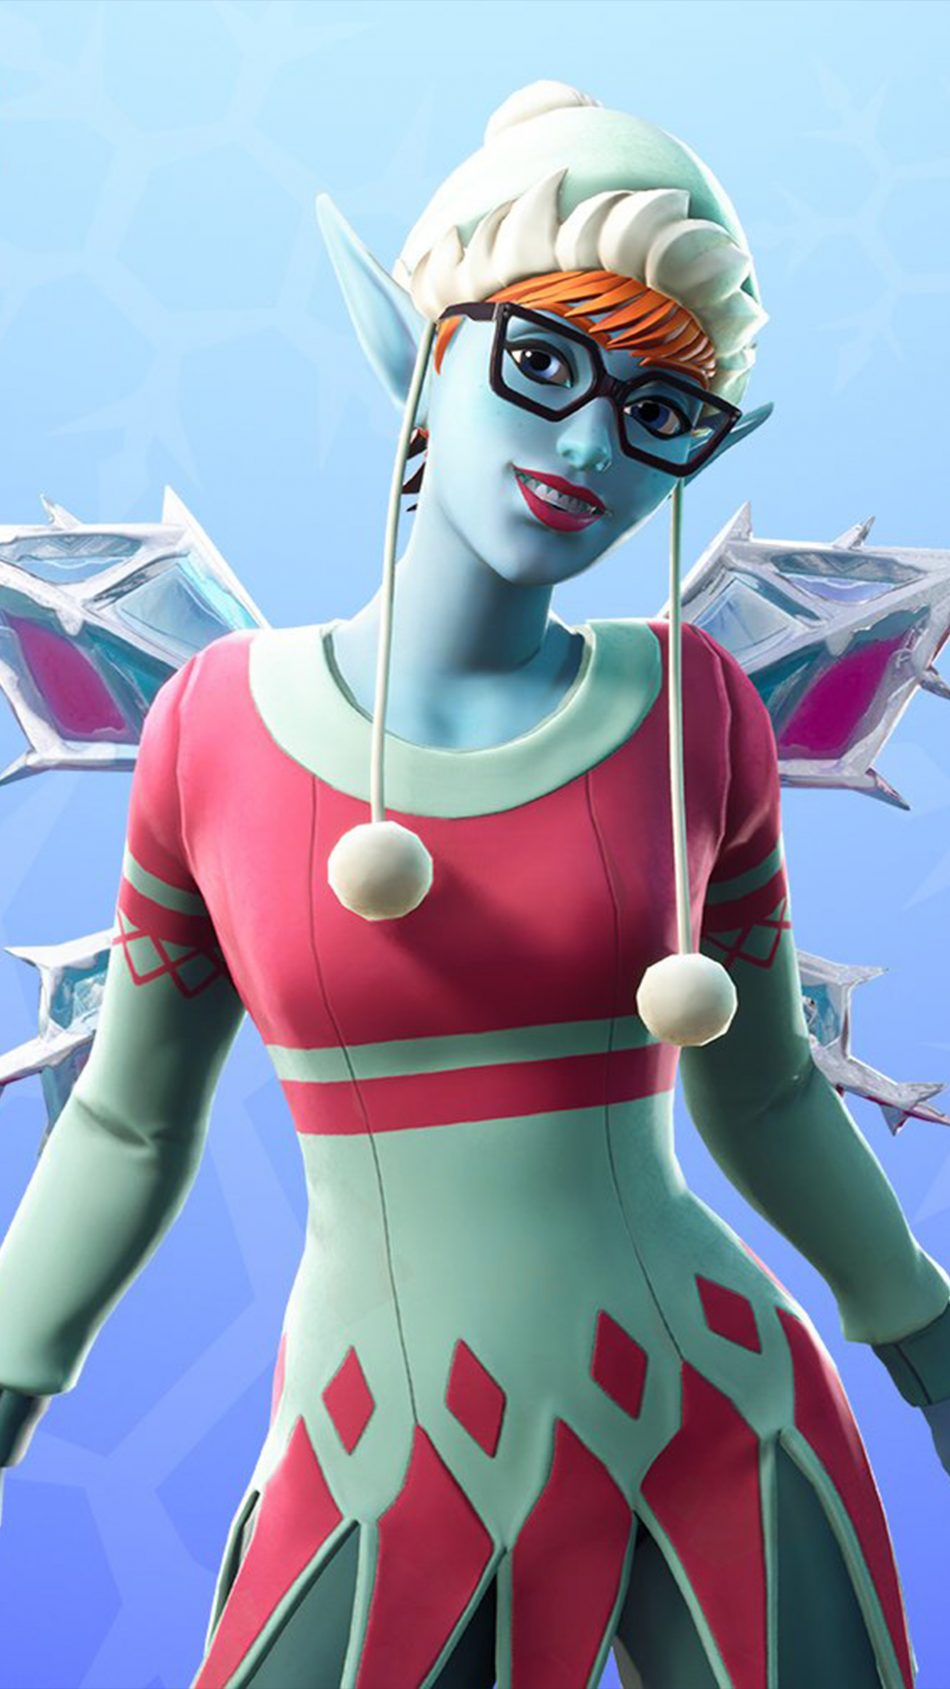 Fortnite Sugarplum Outfit 4K Ultra HD Mobile Wallpaper